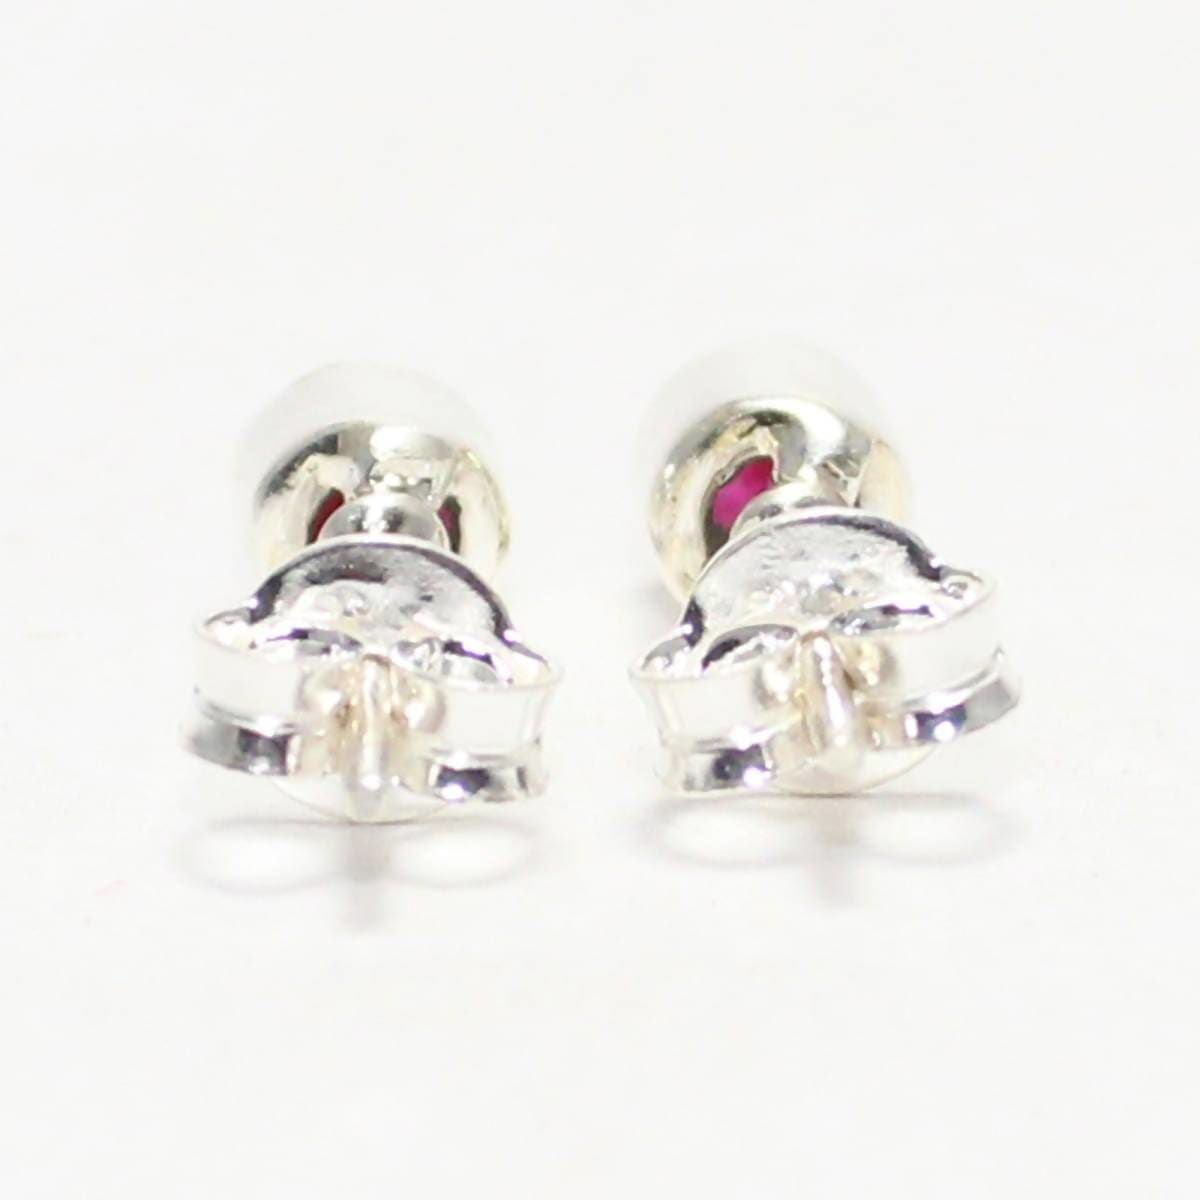 earrings Gorgeous NATURAL INDIAN RUBY Gemstone Earrings Birthstone 925 Sterling Silver Stud - by Jewelry Zone